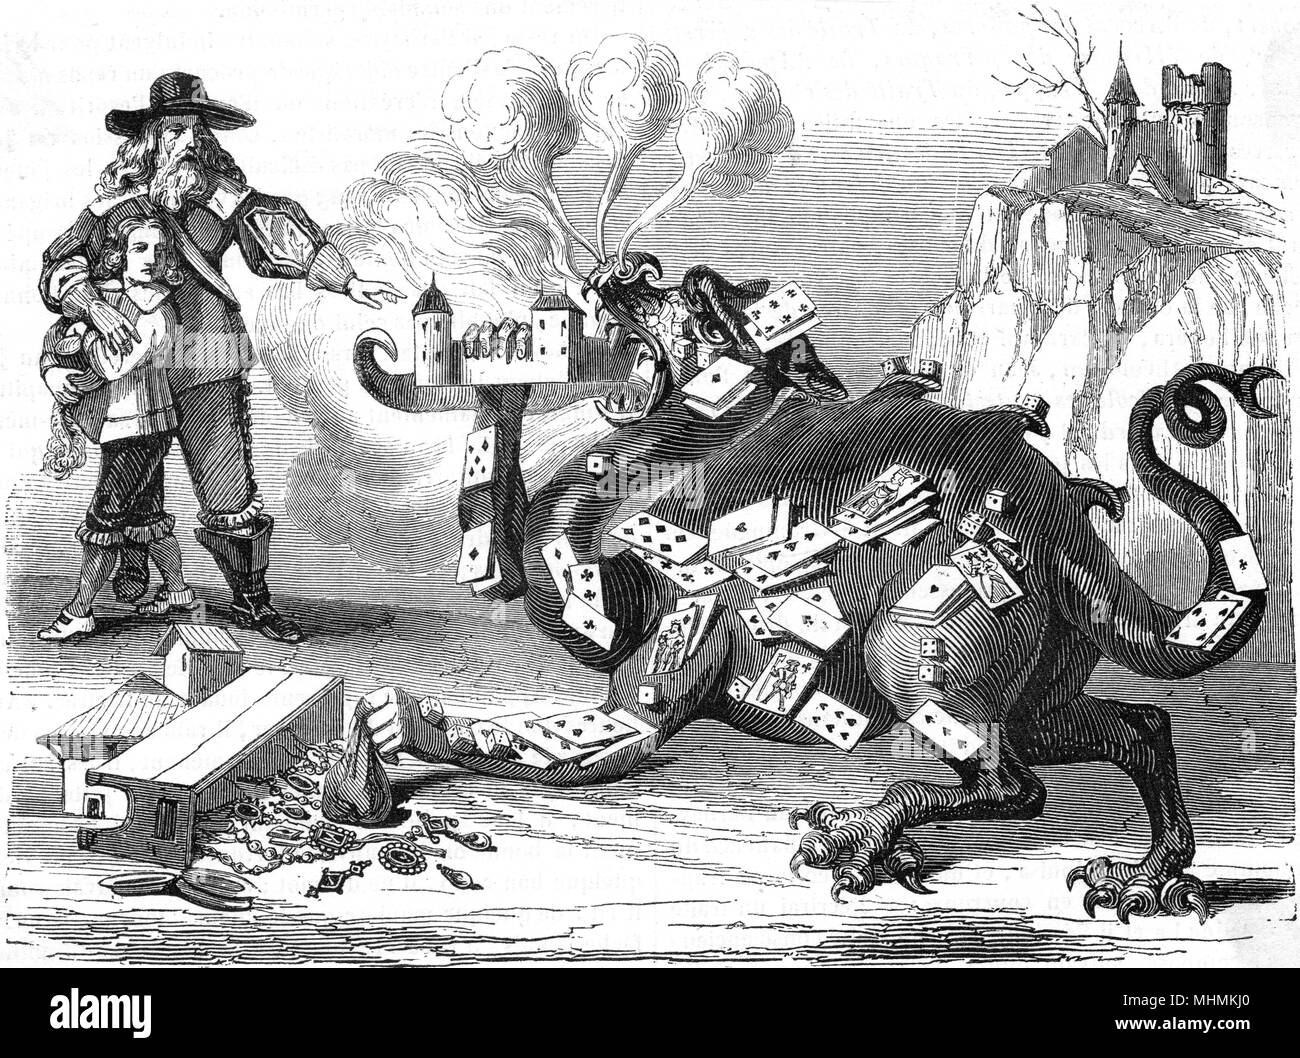 The demon of gambling will eat its way through all your worldly possessions in the end...      Date: 17th century - Stock Image